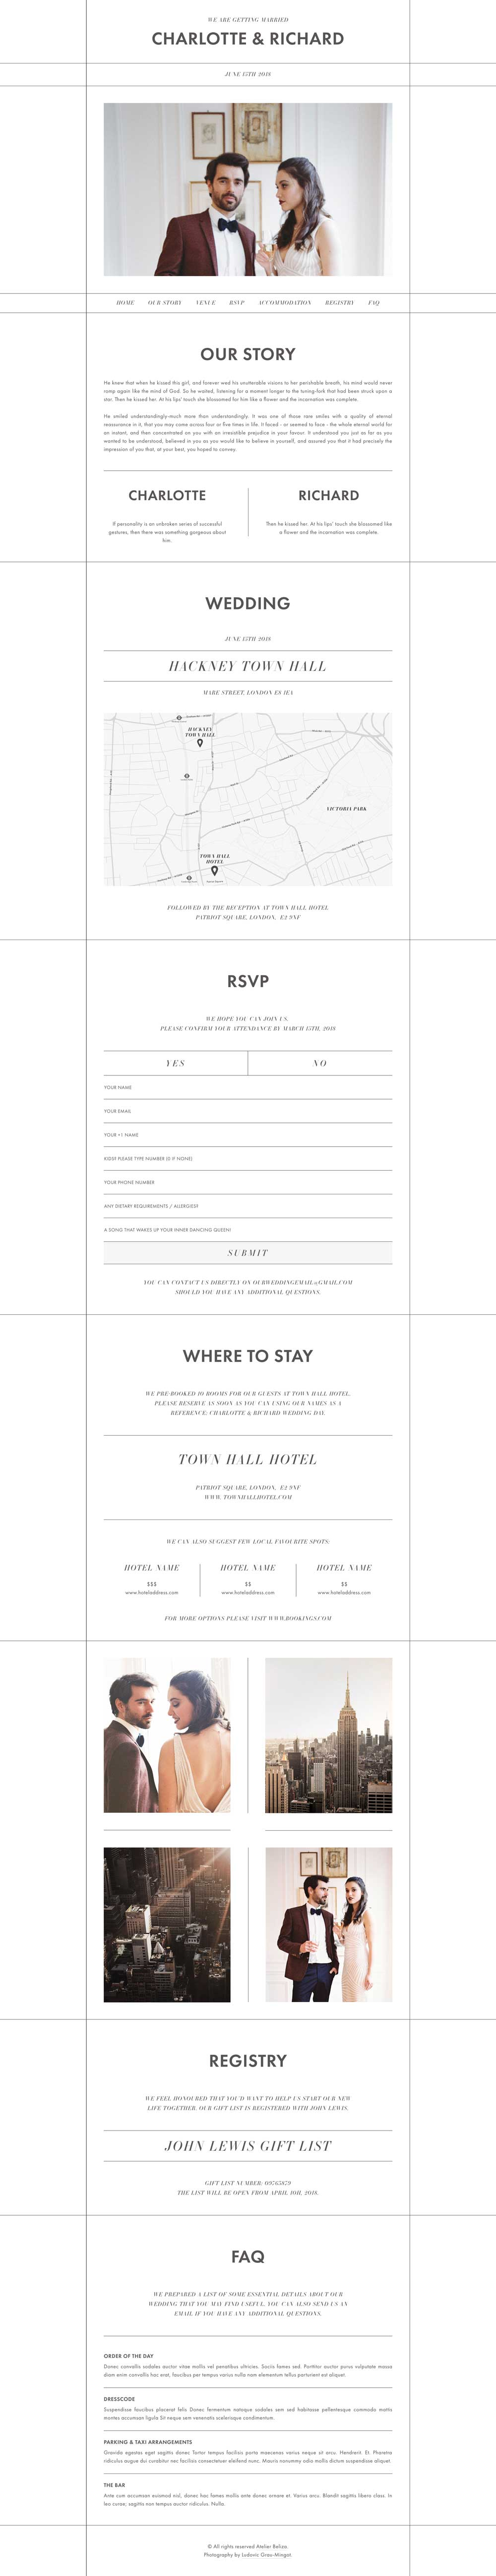 Wedding website template - Manhattan design layout featuring engagement photos, wedding location map, online RSVP and venue information for the wedding guests.